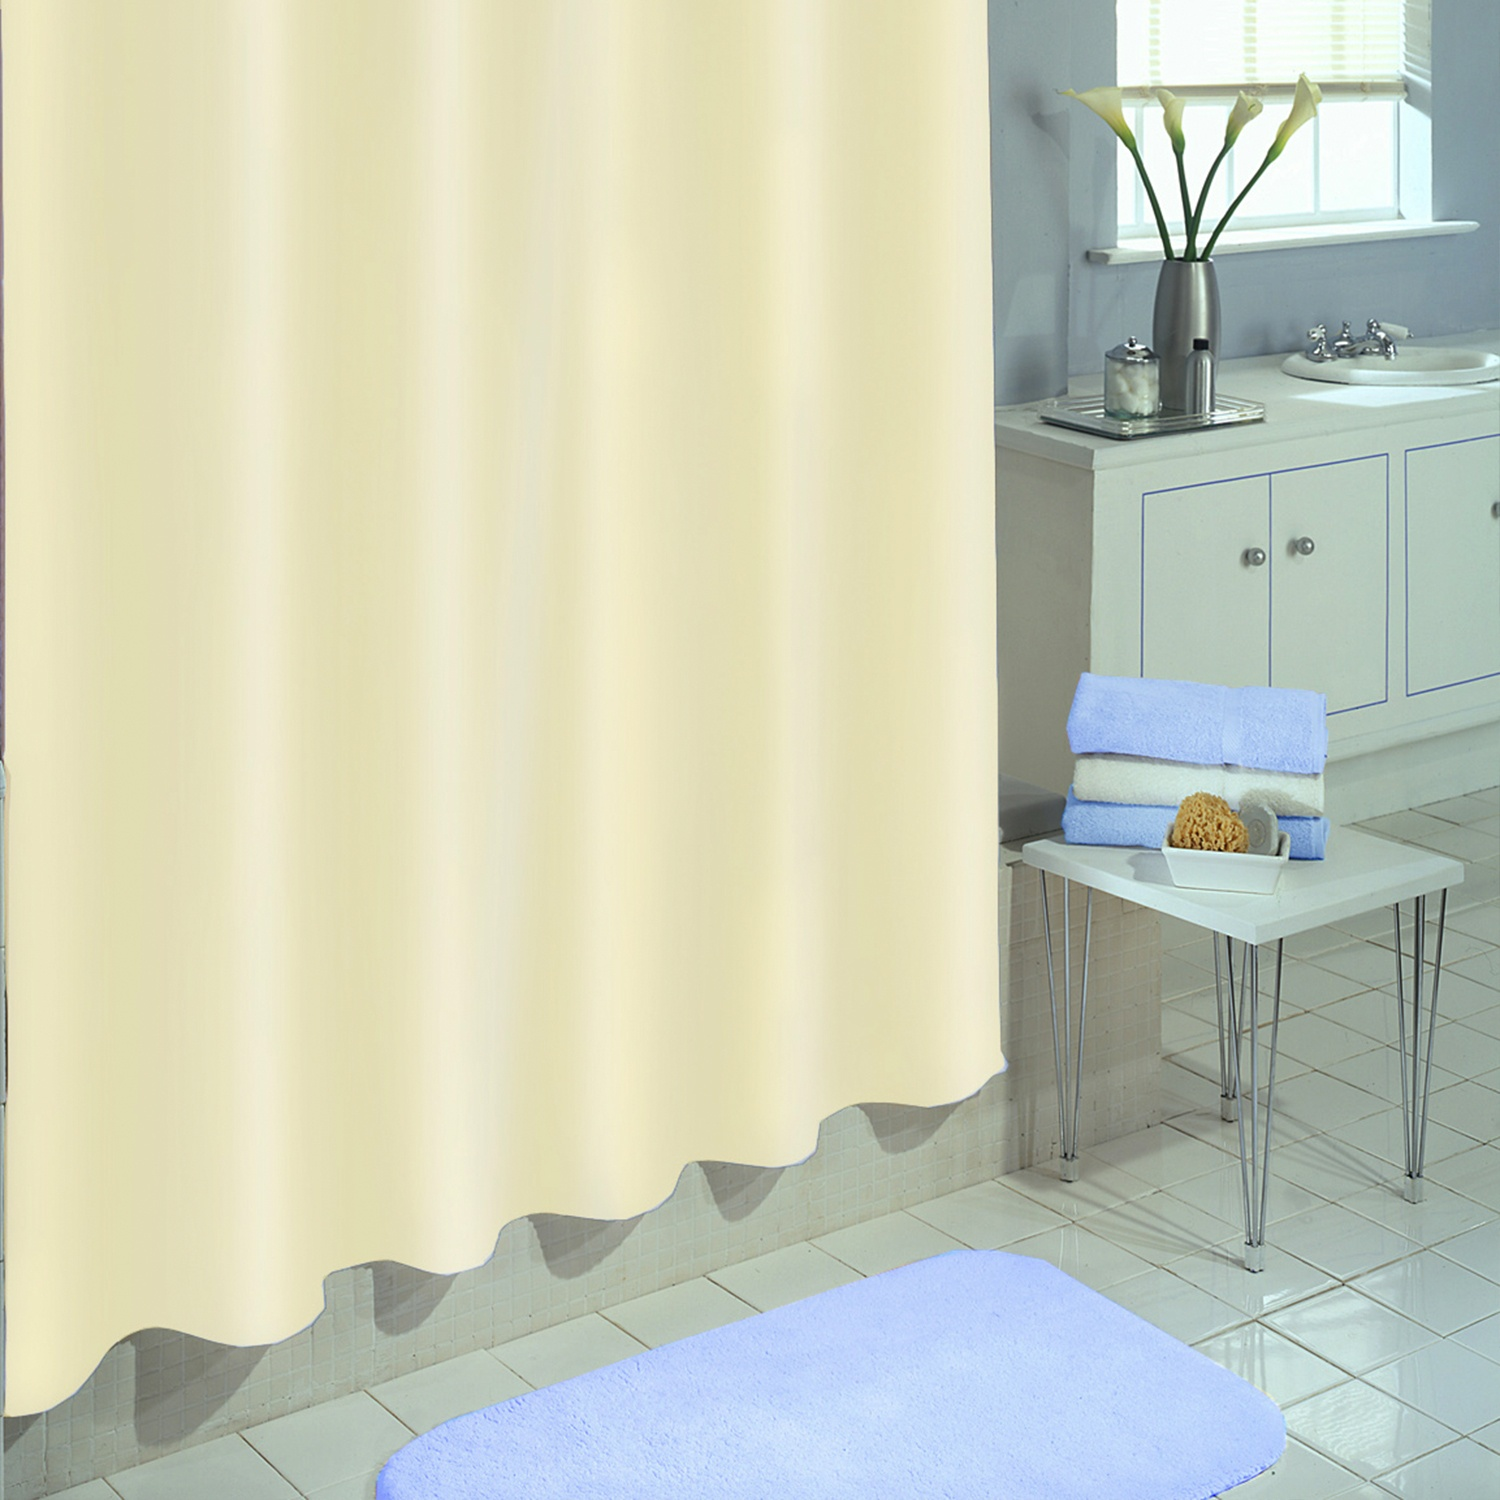 360 Shower Curtain | Clawfoot Tub Curtains | Clawfoot Tub Shower Curtain